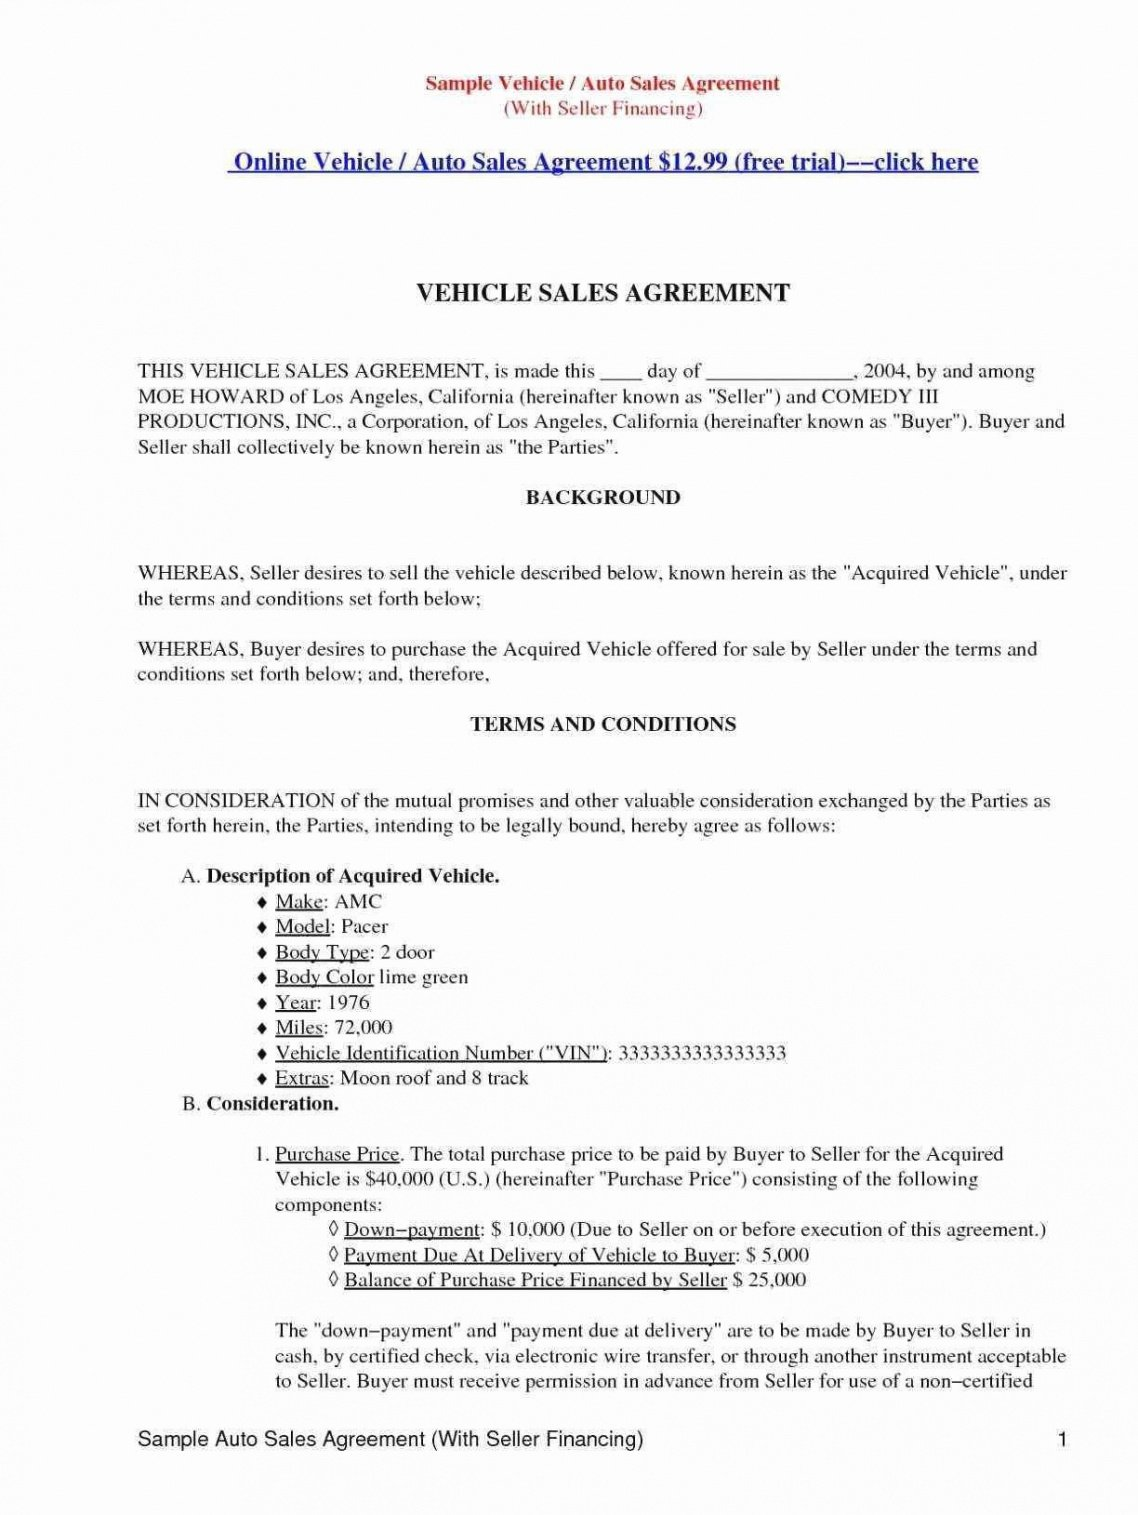 Best Seller Financing Contract Template Word